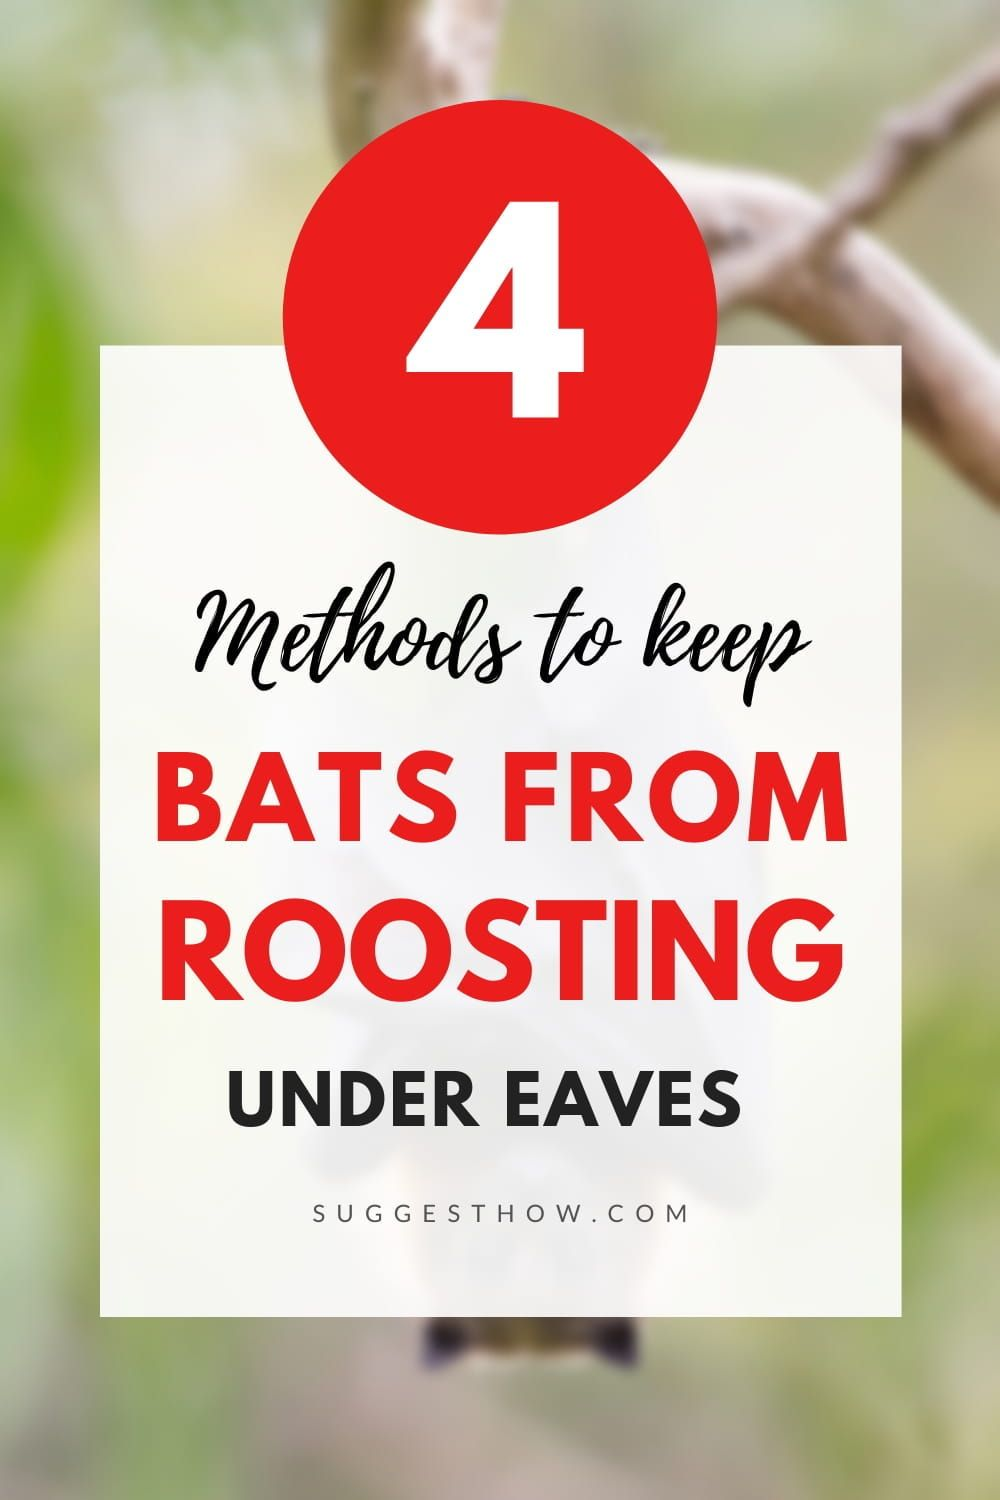 How To Keep Bats From Roosting Under Eaves in 2020